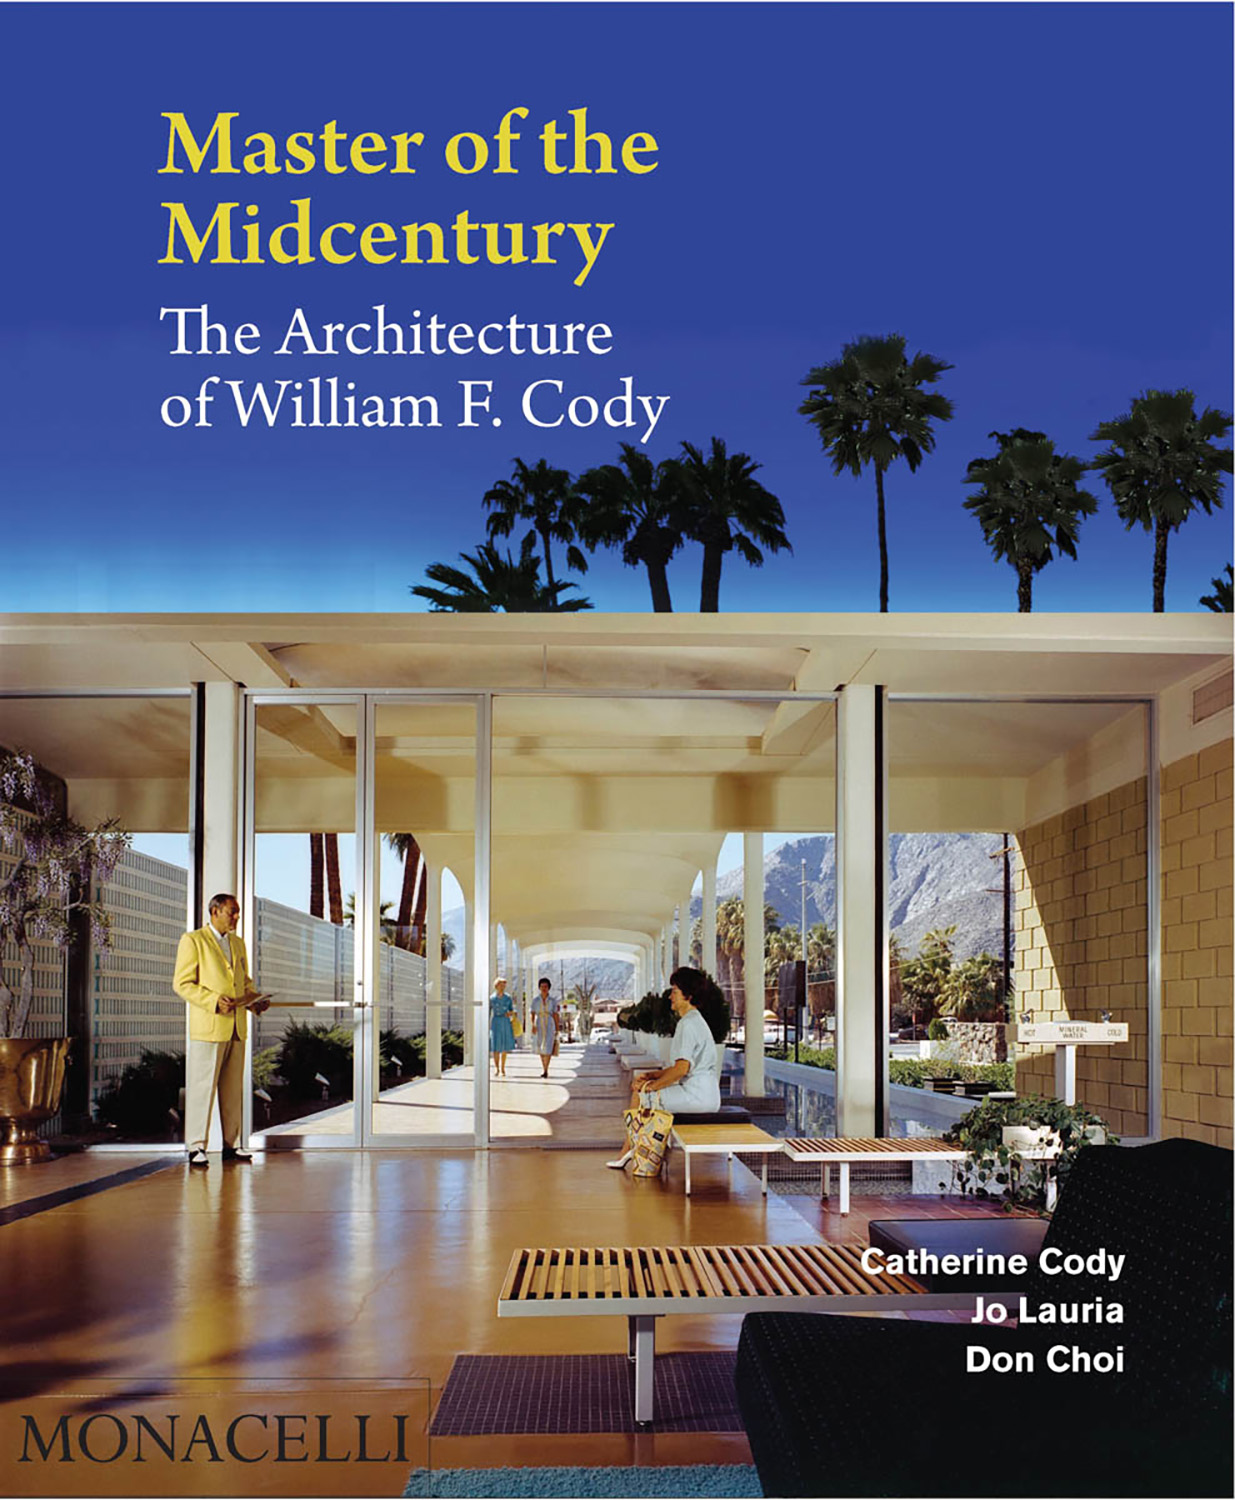 master of the midcentury William f Cody architect book cover